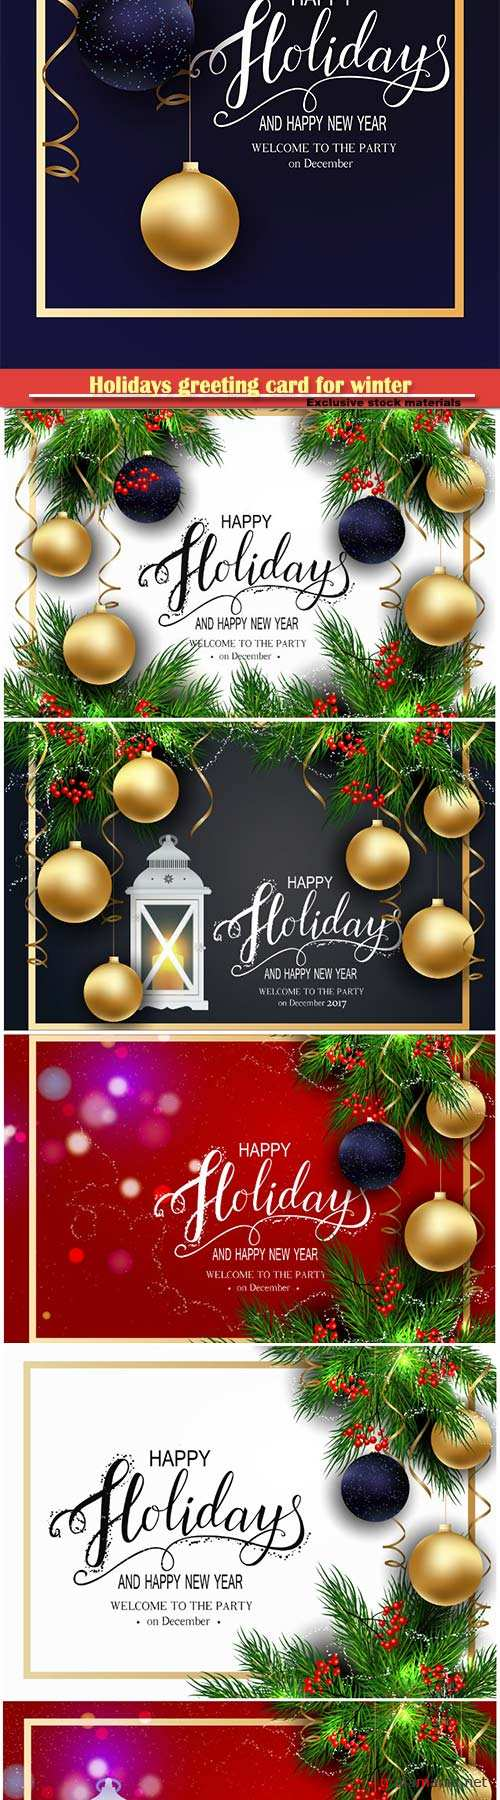 Holidays greeting card for winter happy New Year illustration